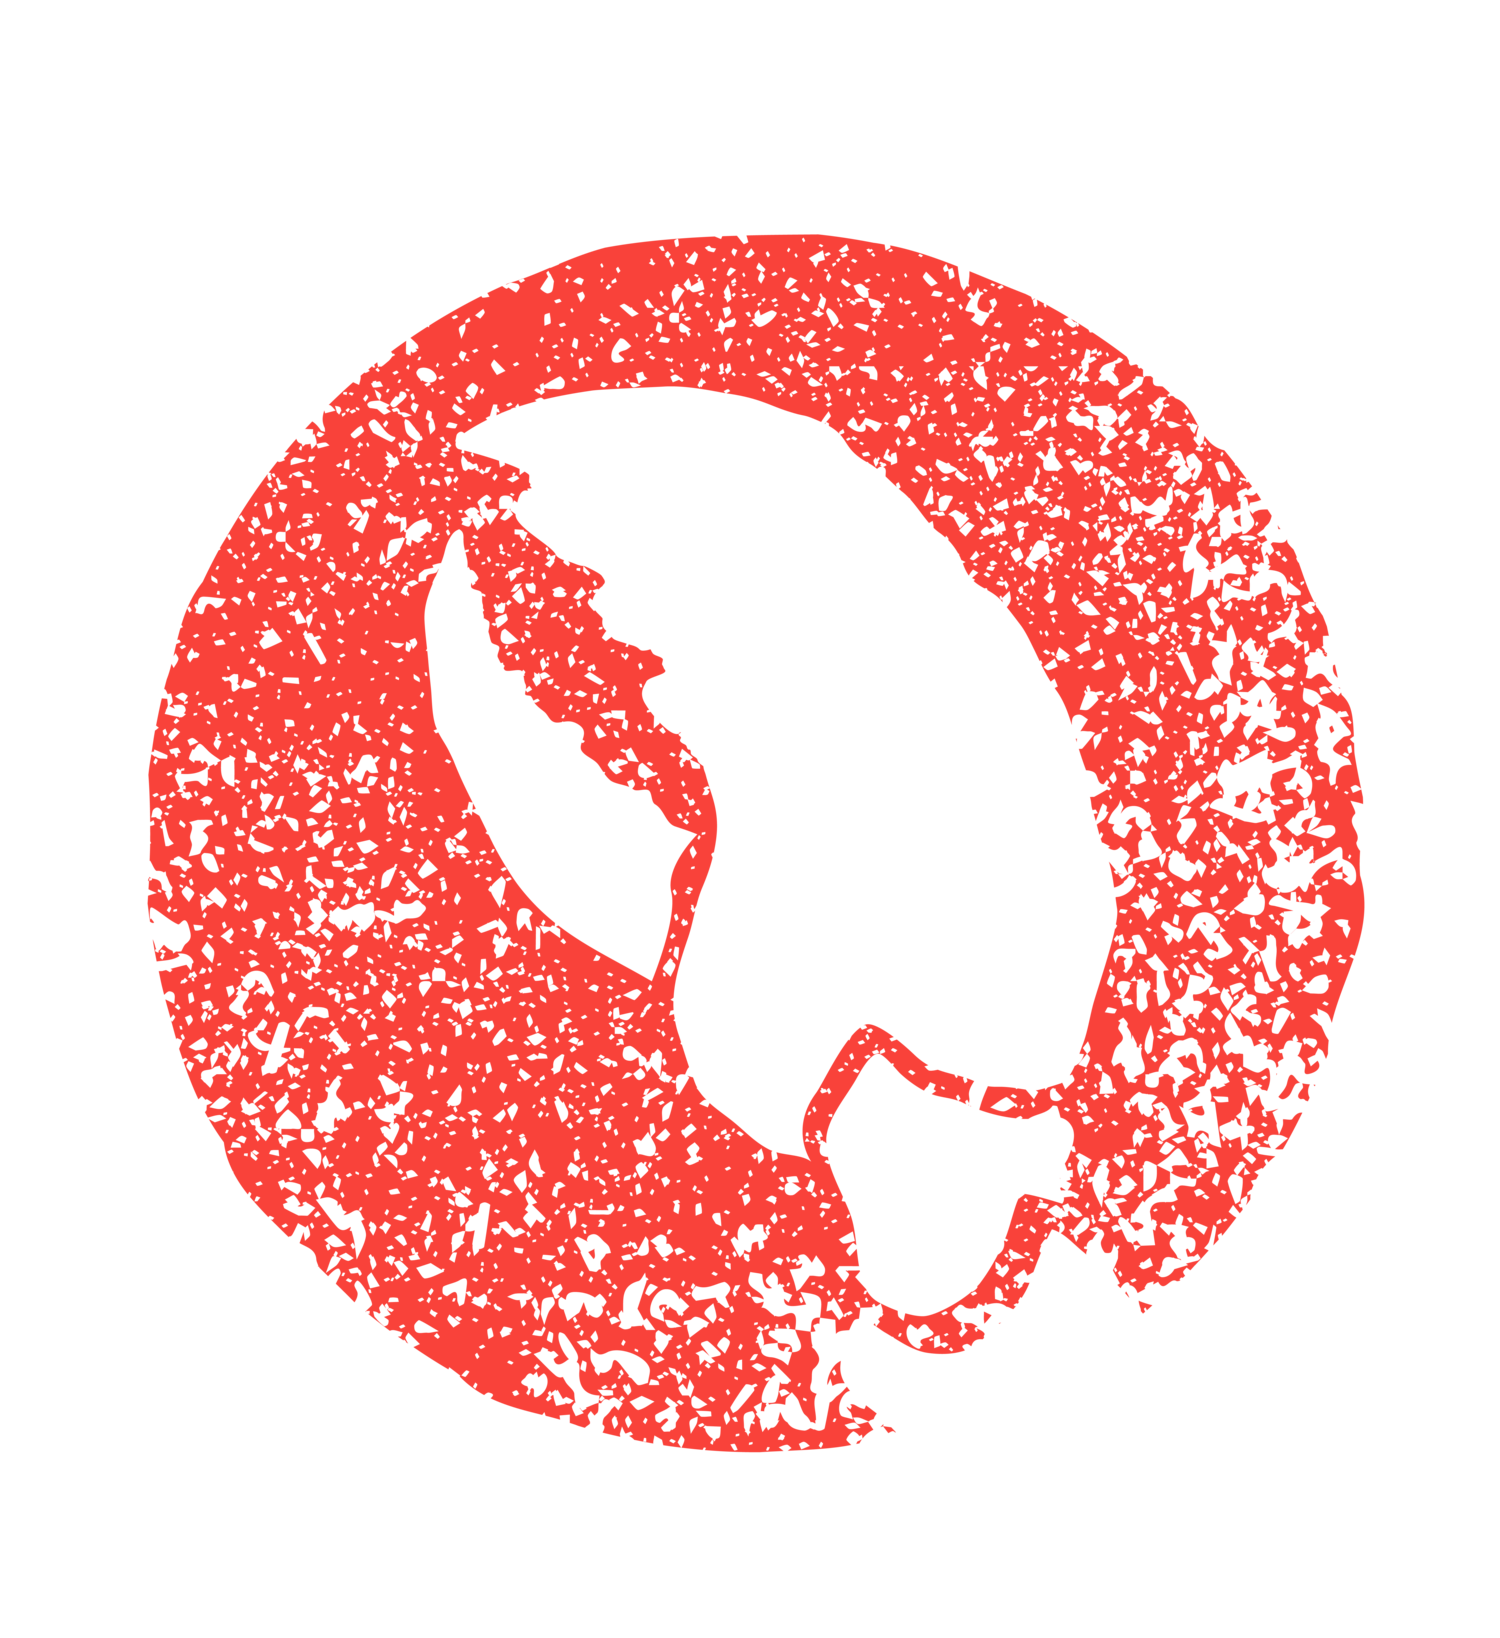 Ready Seafood